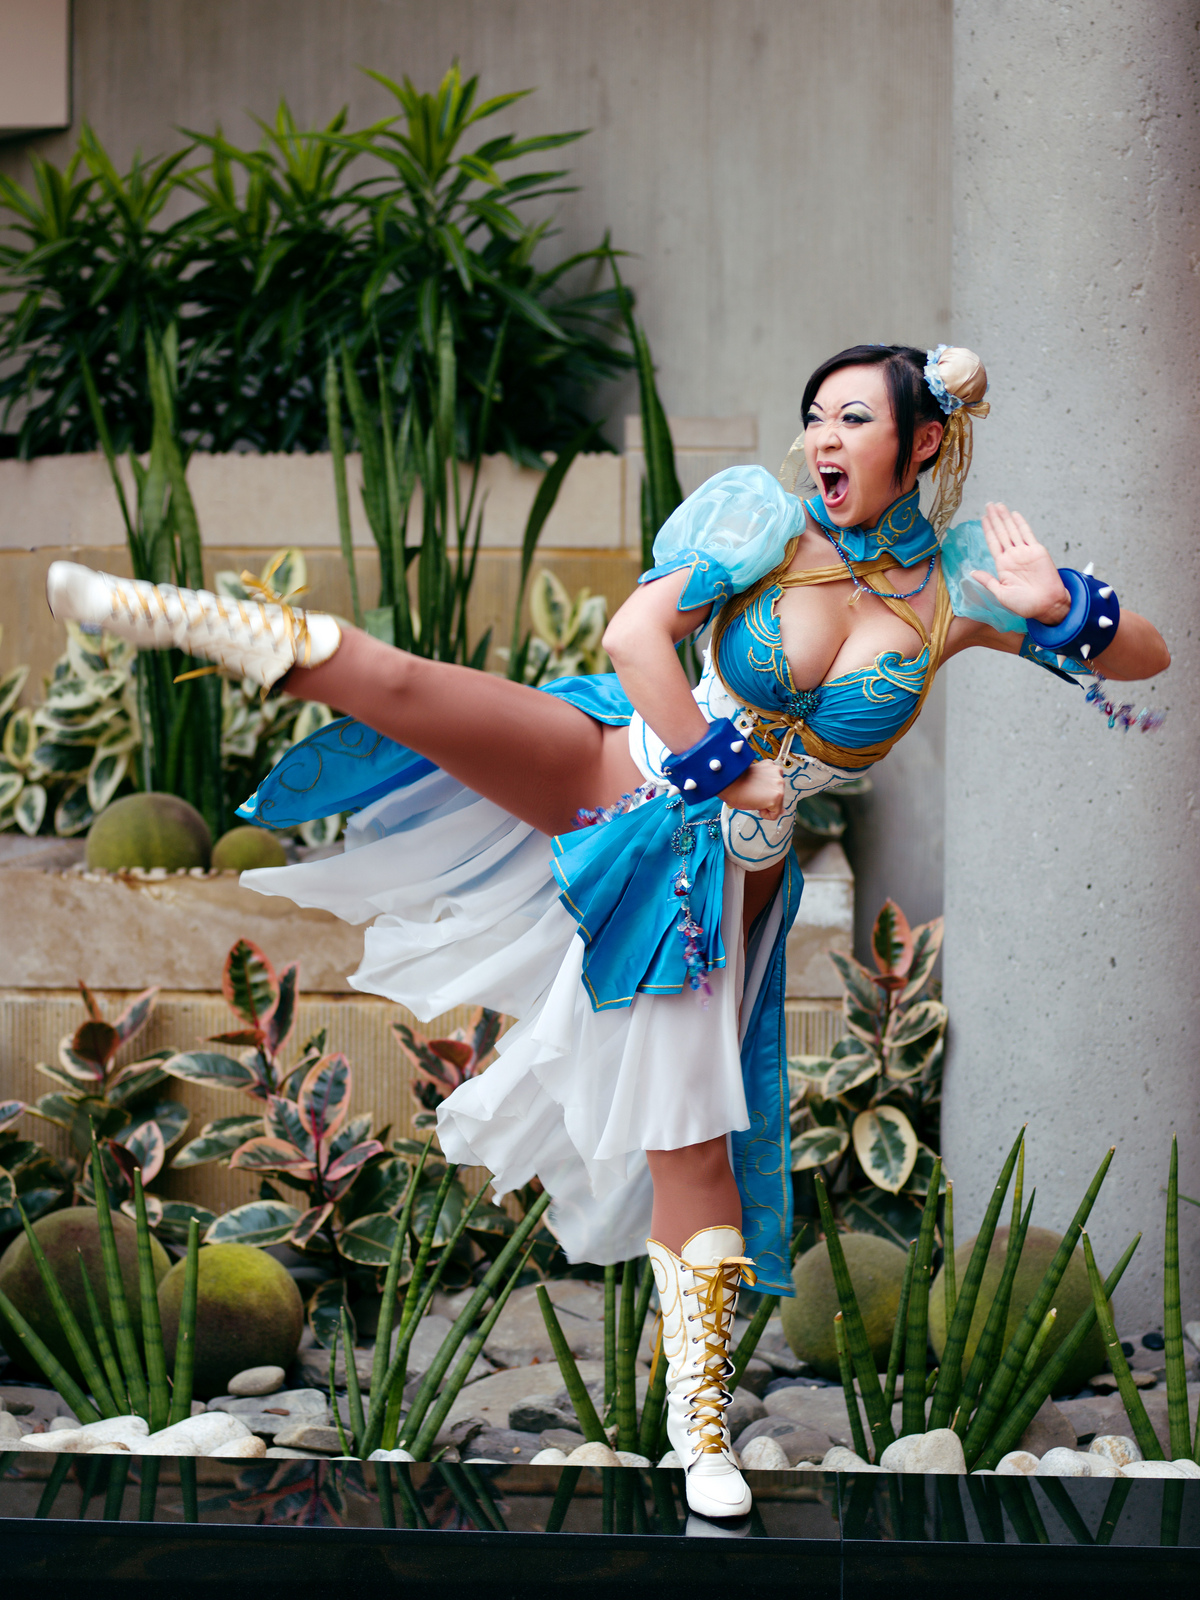 Anna Fischer Cosplay Photography | Cosplay Photographer ...